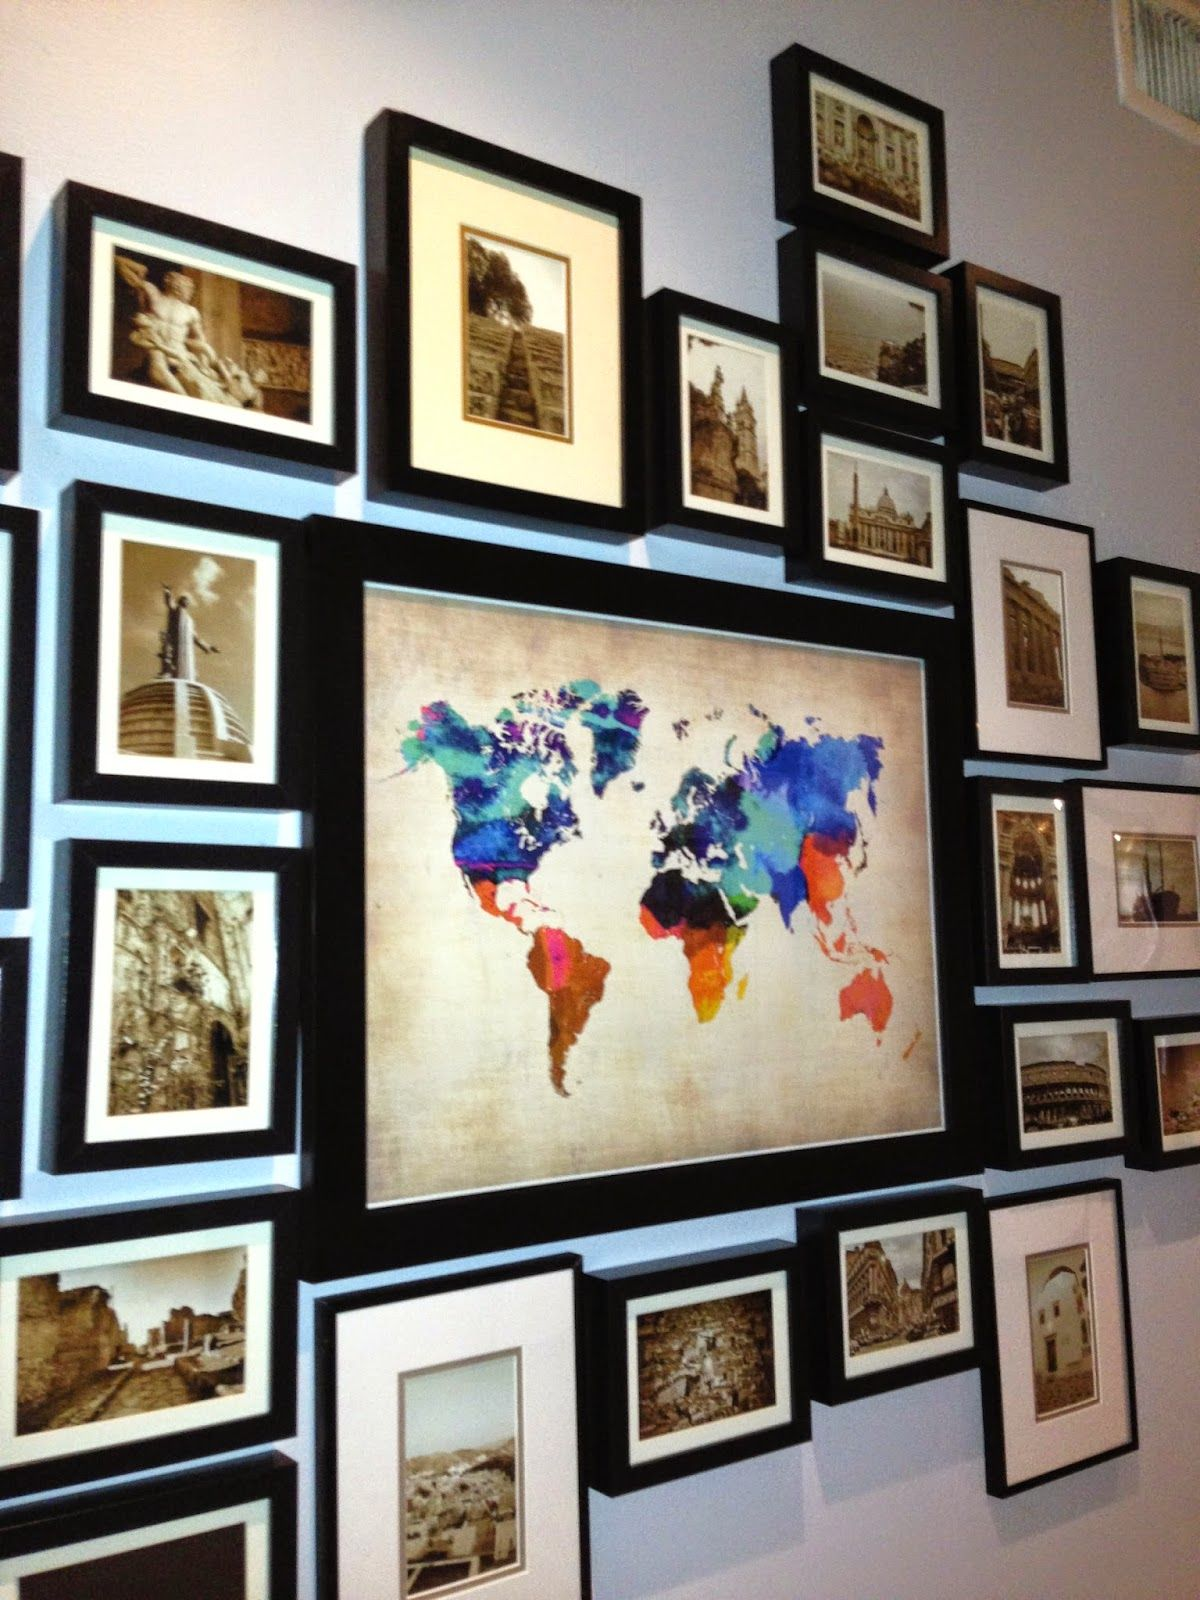 Our house is yalls house travel photo wall home decor travel wall to remind you of all the amazing places you have been love this idea for matts officeready has travel map with pins jeuxipadfo Gallery